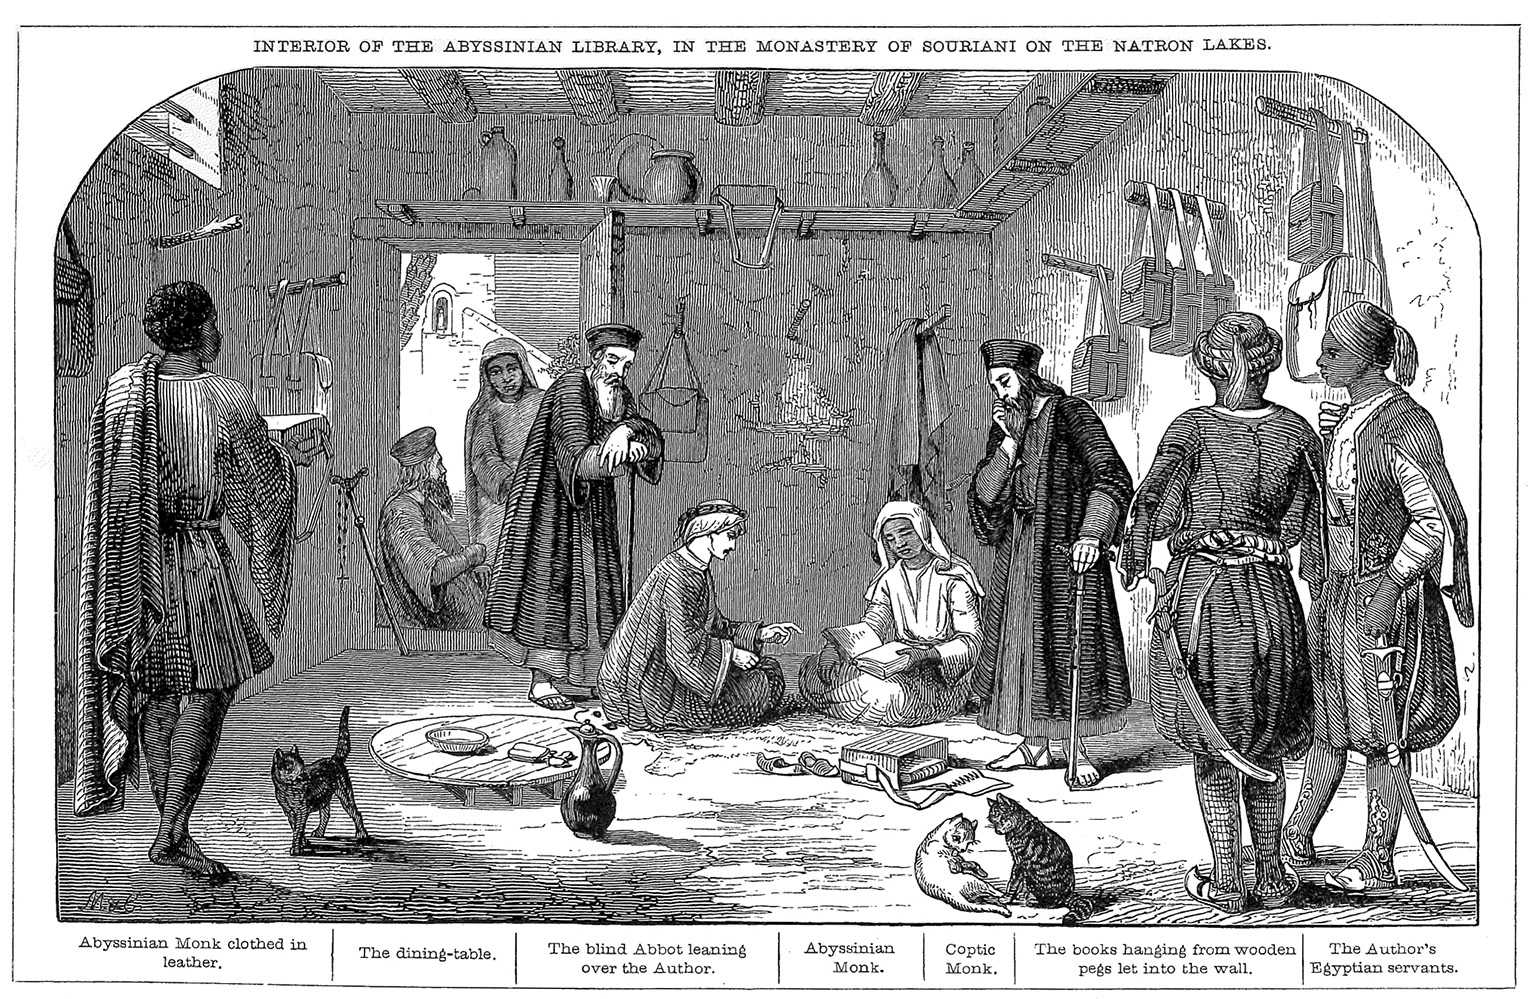 Fig. 3. Interior of the Abyssinian Library in the Monastery of Souriani on the Natron Lakes